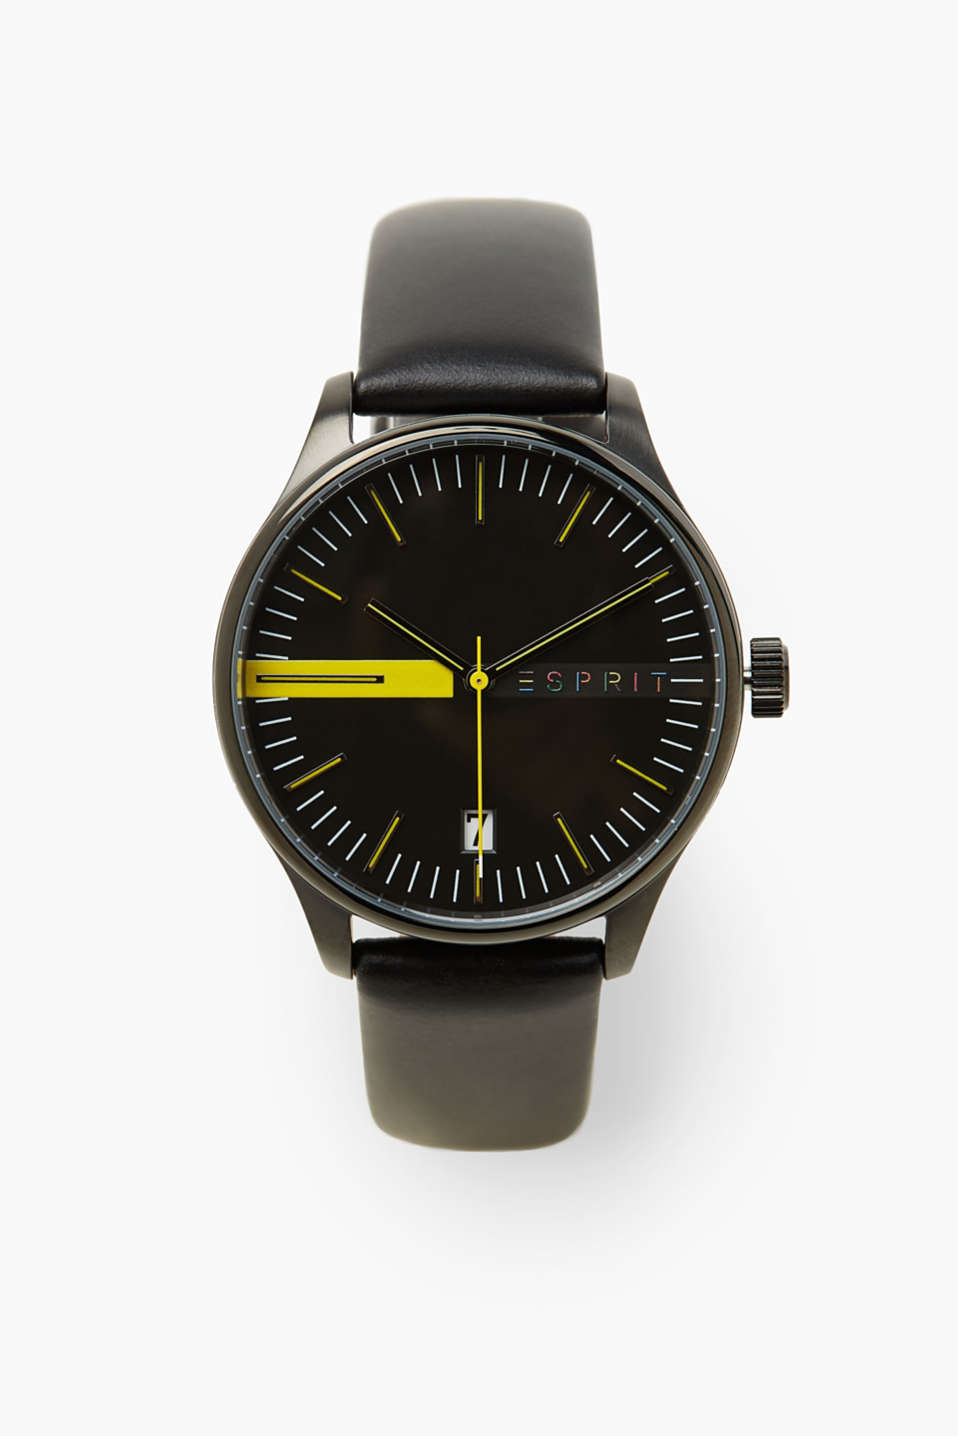 Watch styled in monochrome black with fine, yellow details, making it a modern accessory for men.